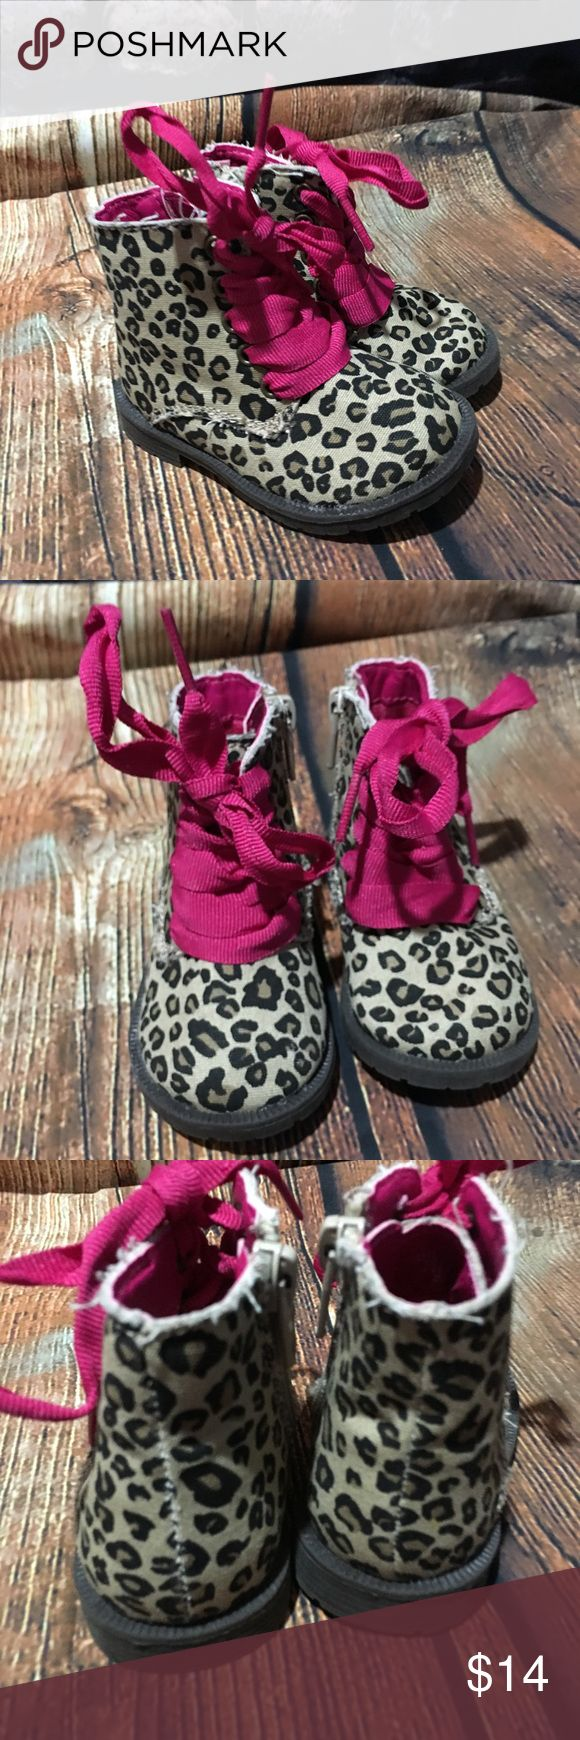 Children's Place Canvas Leopard Ankle Boots 4 The Children's Place high top canvas boots girl's toddler size 4 shoe brown animal print, zip up sides, pink laces canvas upper, man made sole gently used.  no defects. outer sole measures about 5 3/4 inches inner sole measures about 4 3/4 inches measure 3 3/4 inches high Children's Place Shoes Baby & Walker